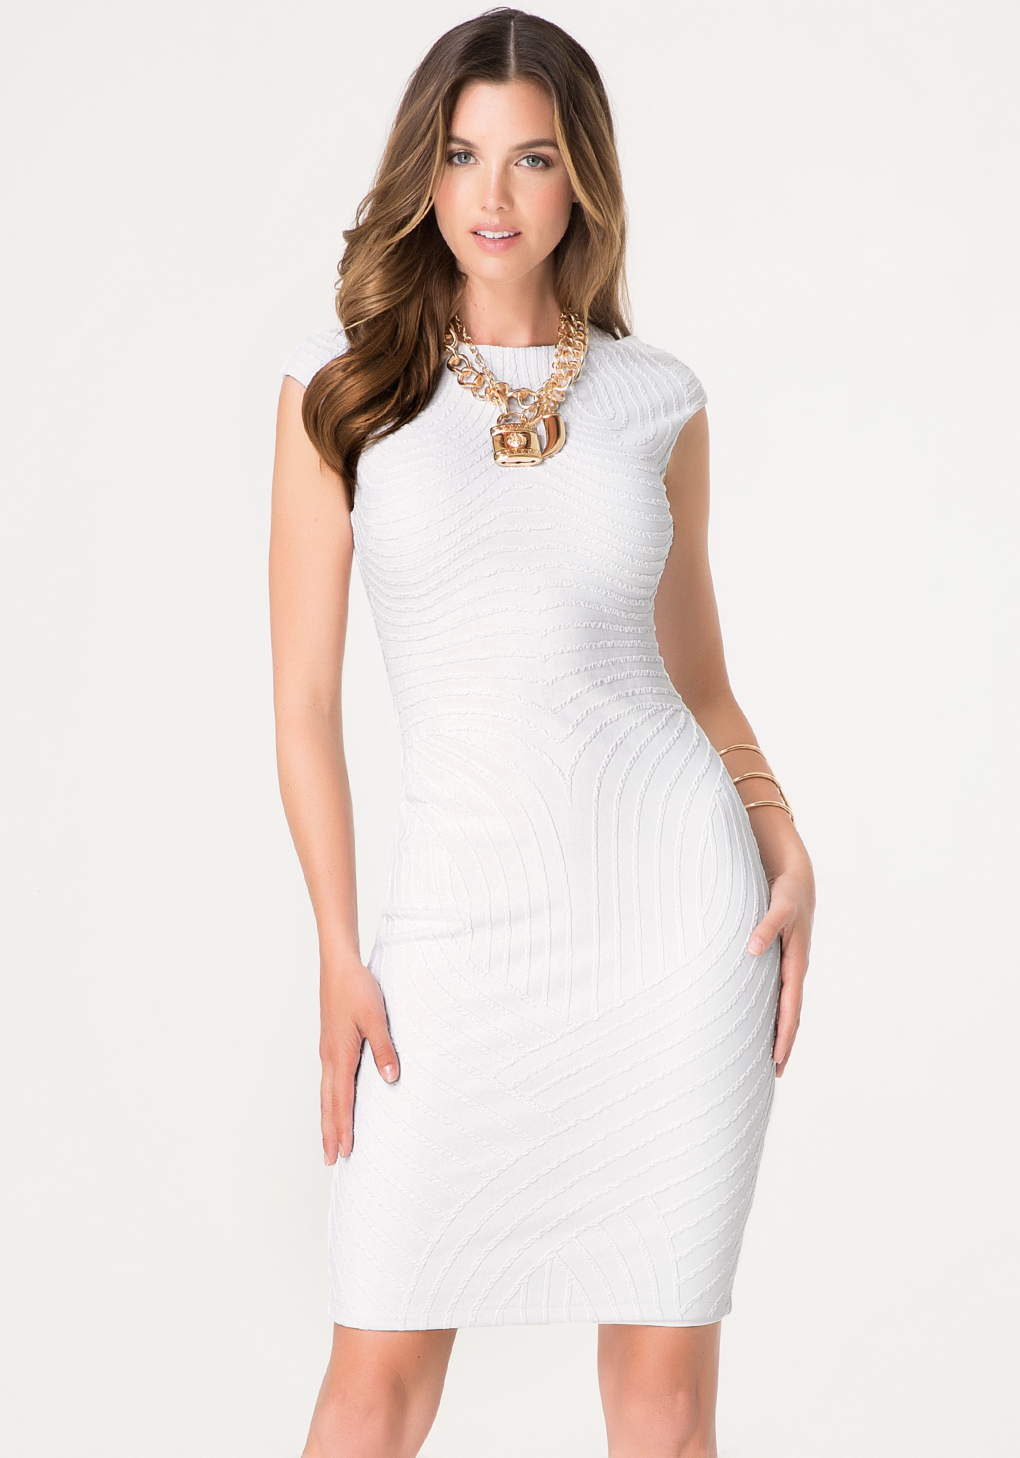 39adf0821b Bebe Textured Midi Dress in White - Lyst